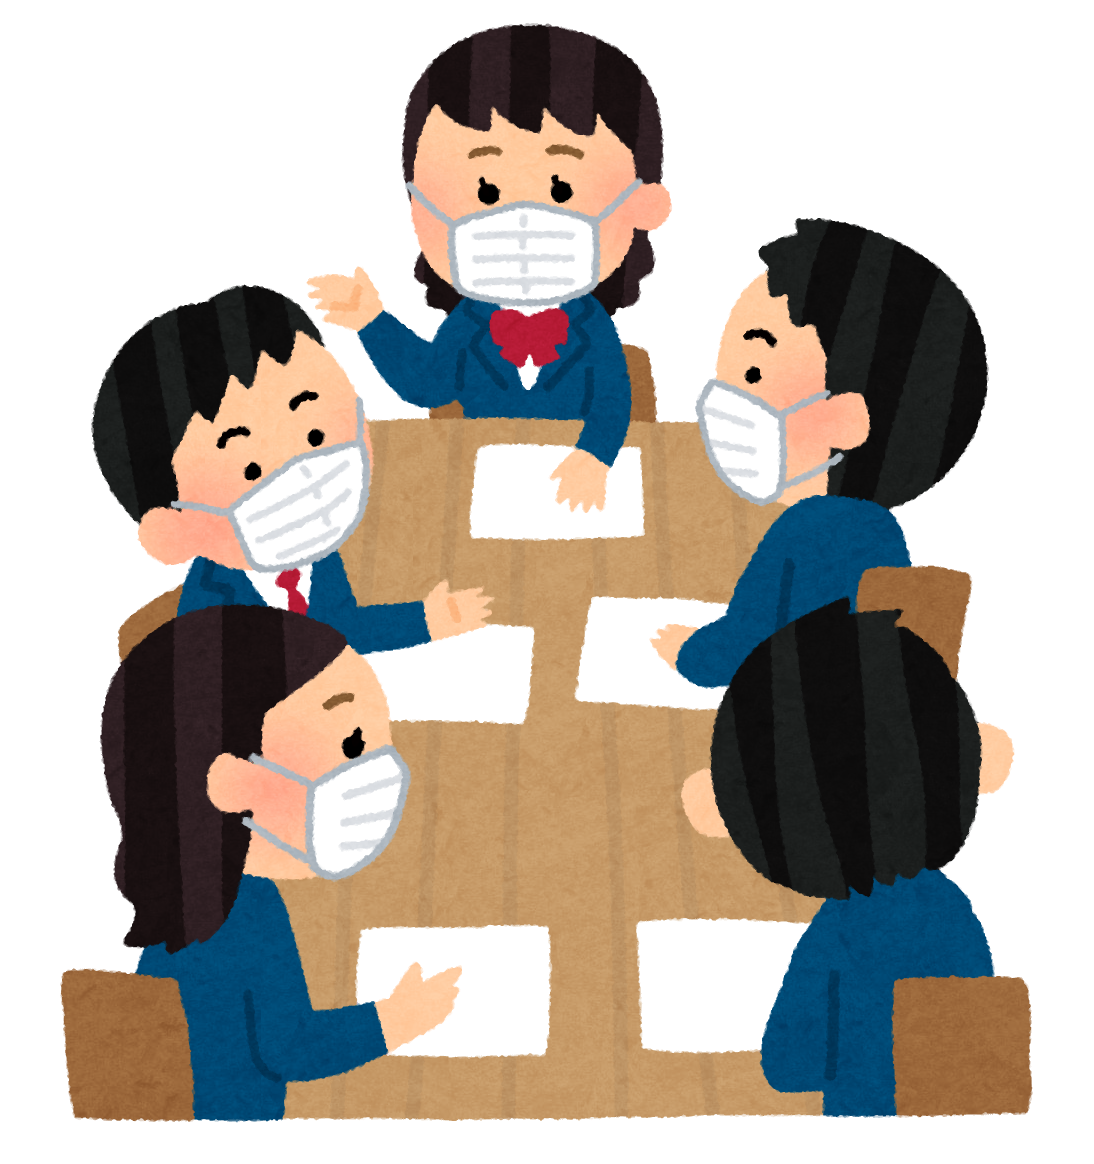 kaigi_mask_school.png (1094×1164)